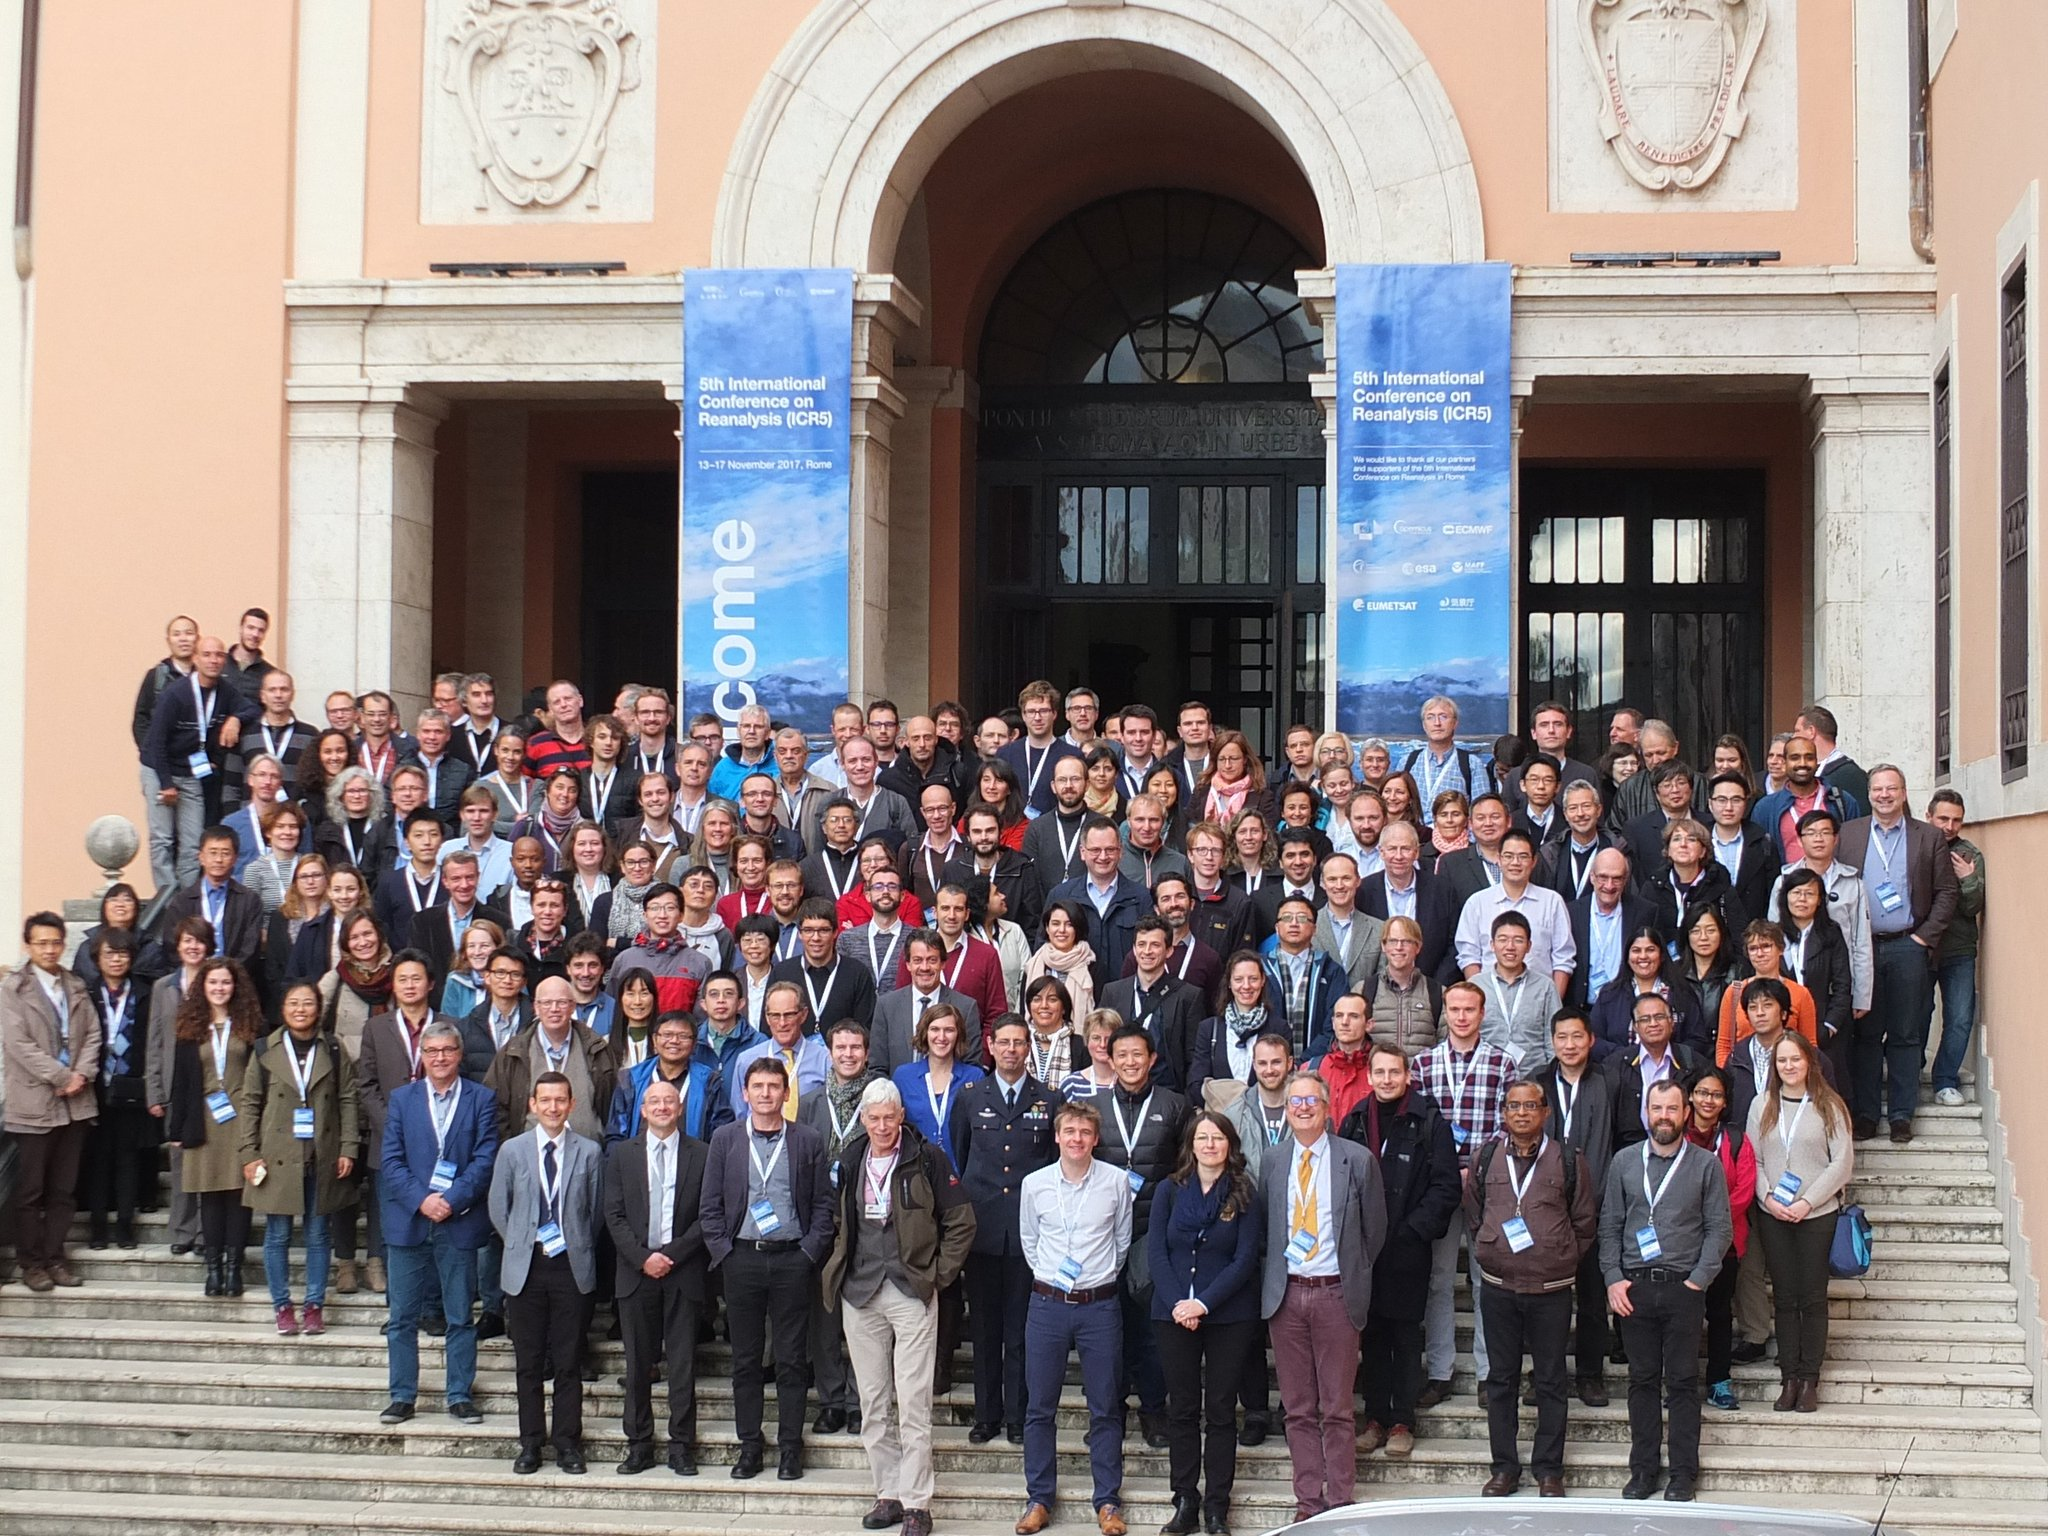 ICR5 group photo